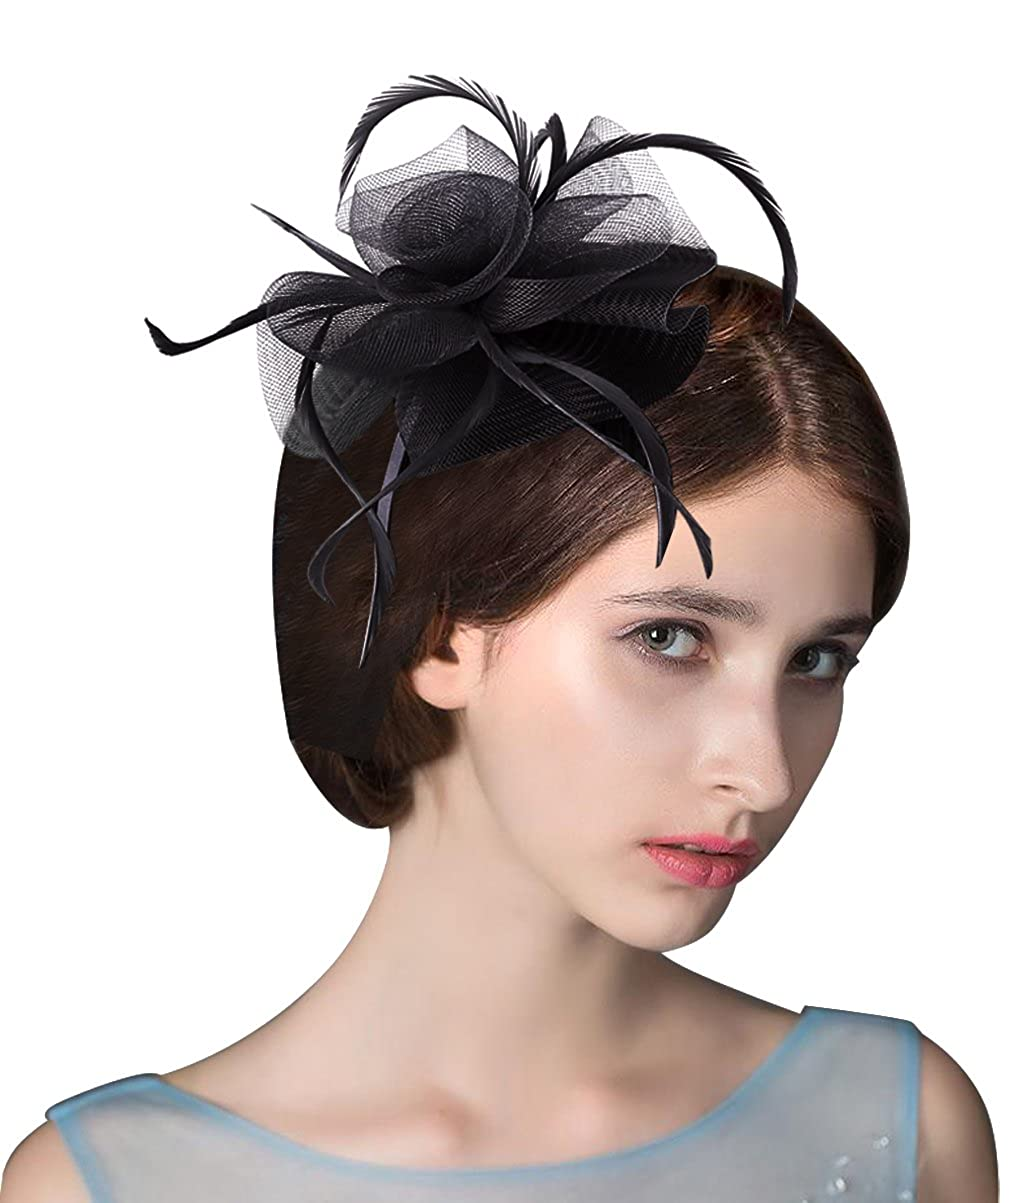 Edith qi Womens Vintage Fascinators Hat Hair Clip Feather Wedding Headwear  1920s Headpiece for Derby Tea Church Party at Amazon Women s Clothing store  c4258358e2c